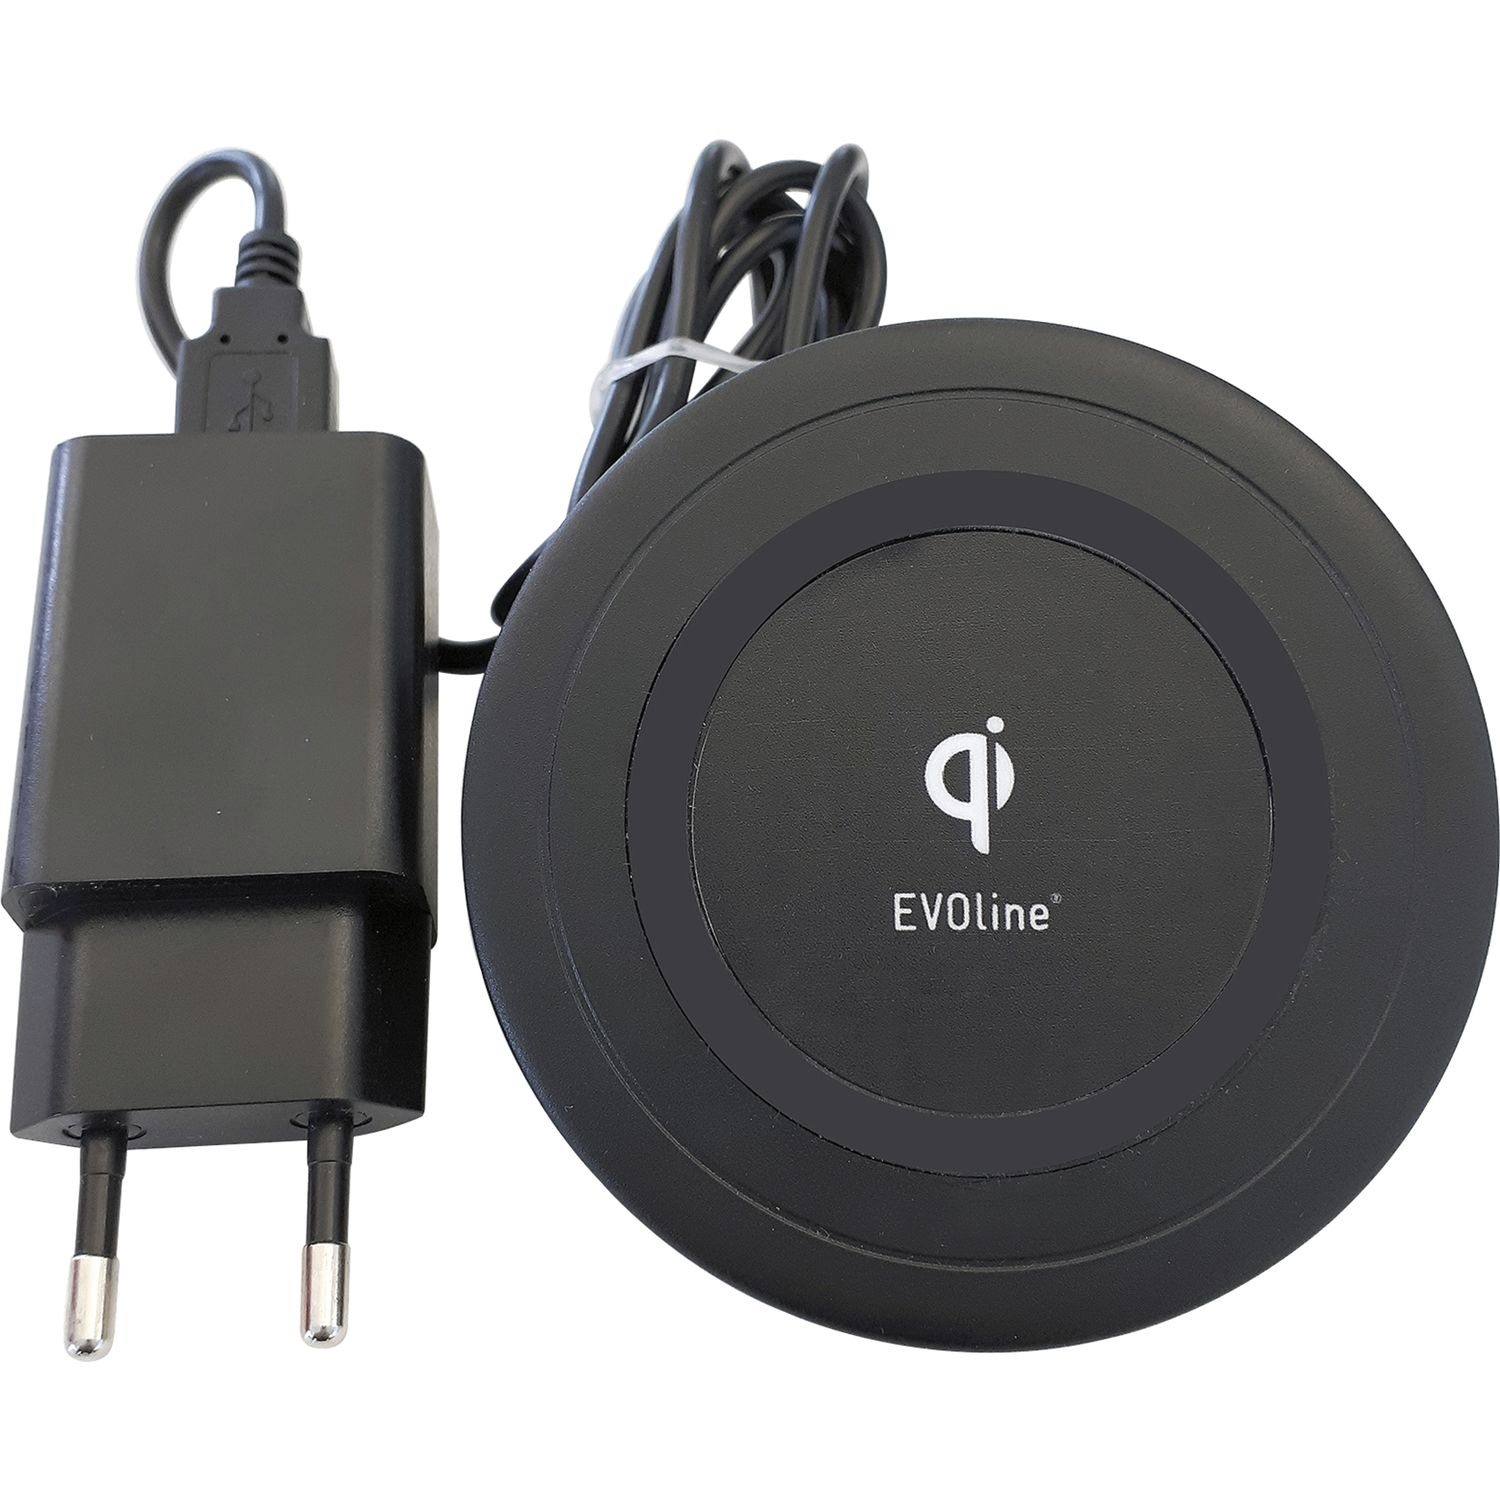 evoline wireless charger qi ladefunktion kabelloses. Black Bedroom Furniture Sets. Home Design Ideas